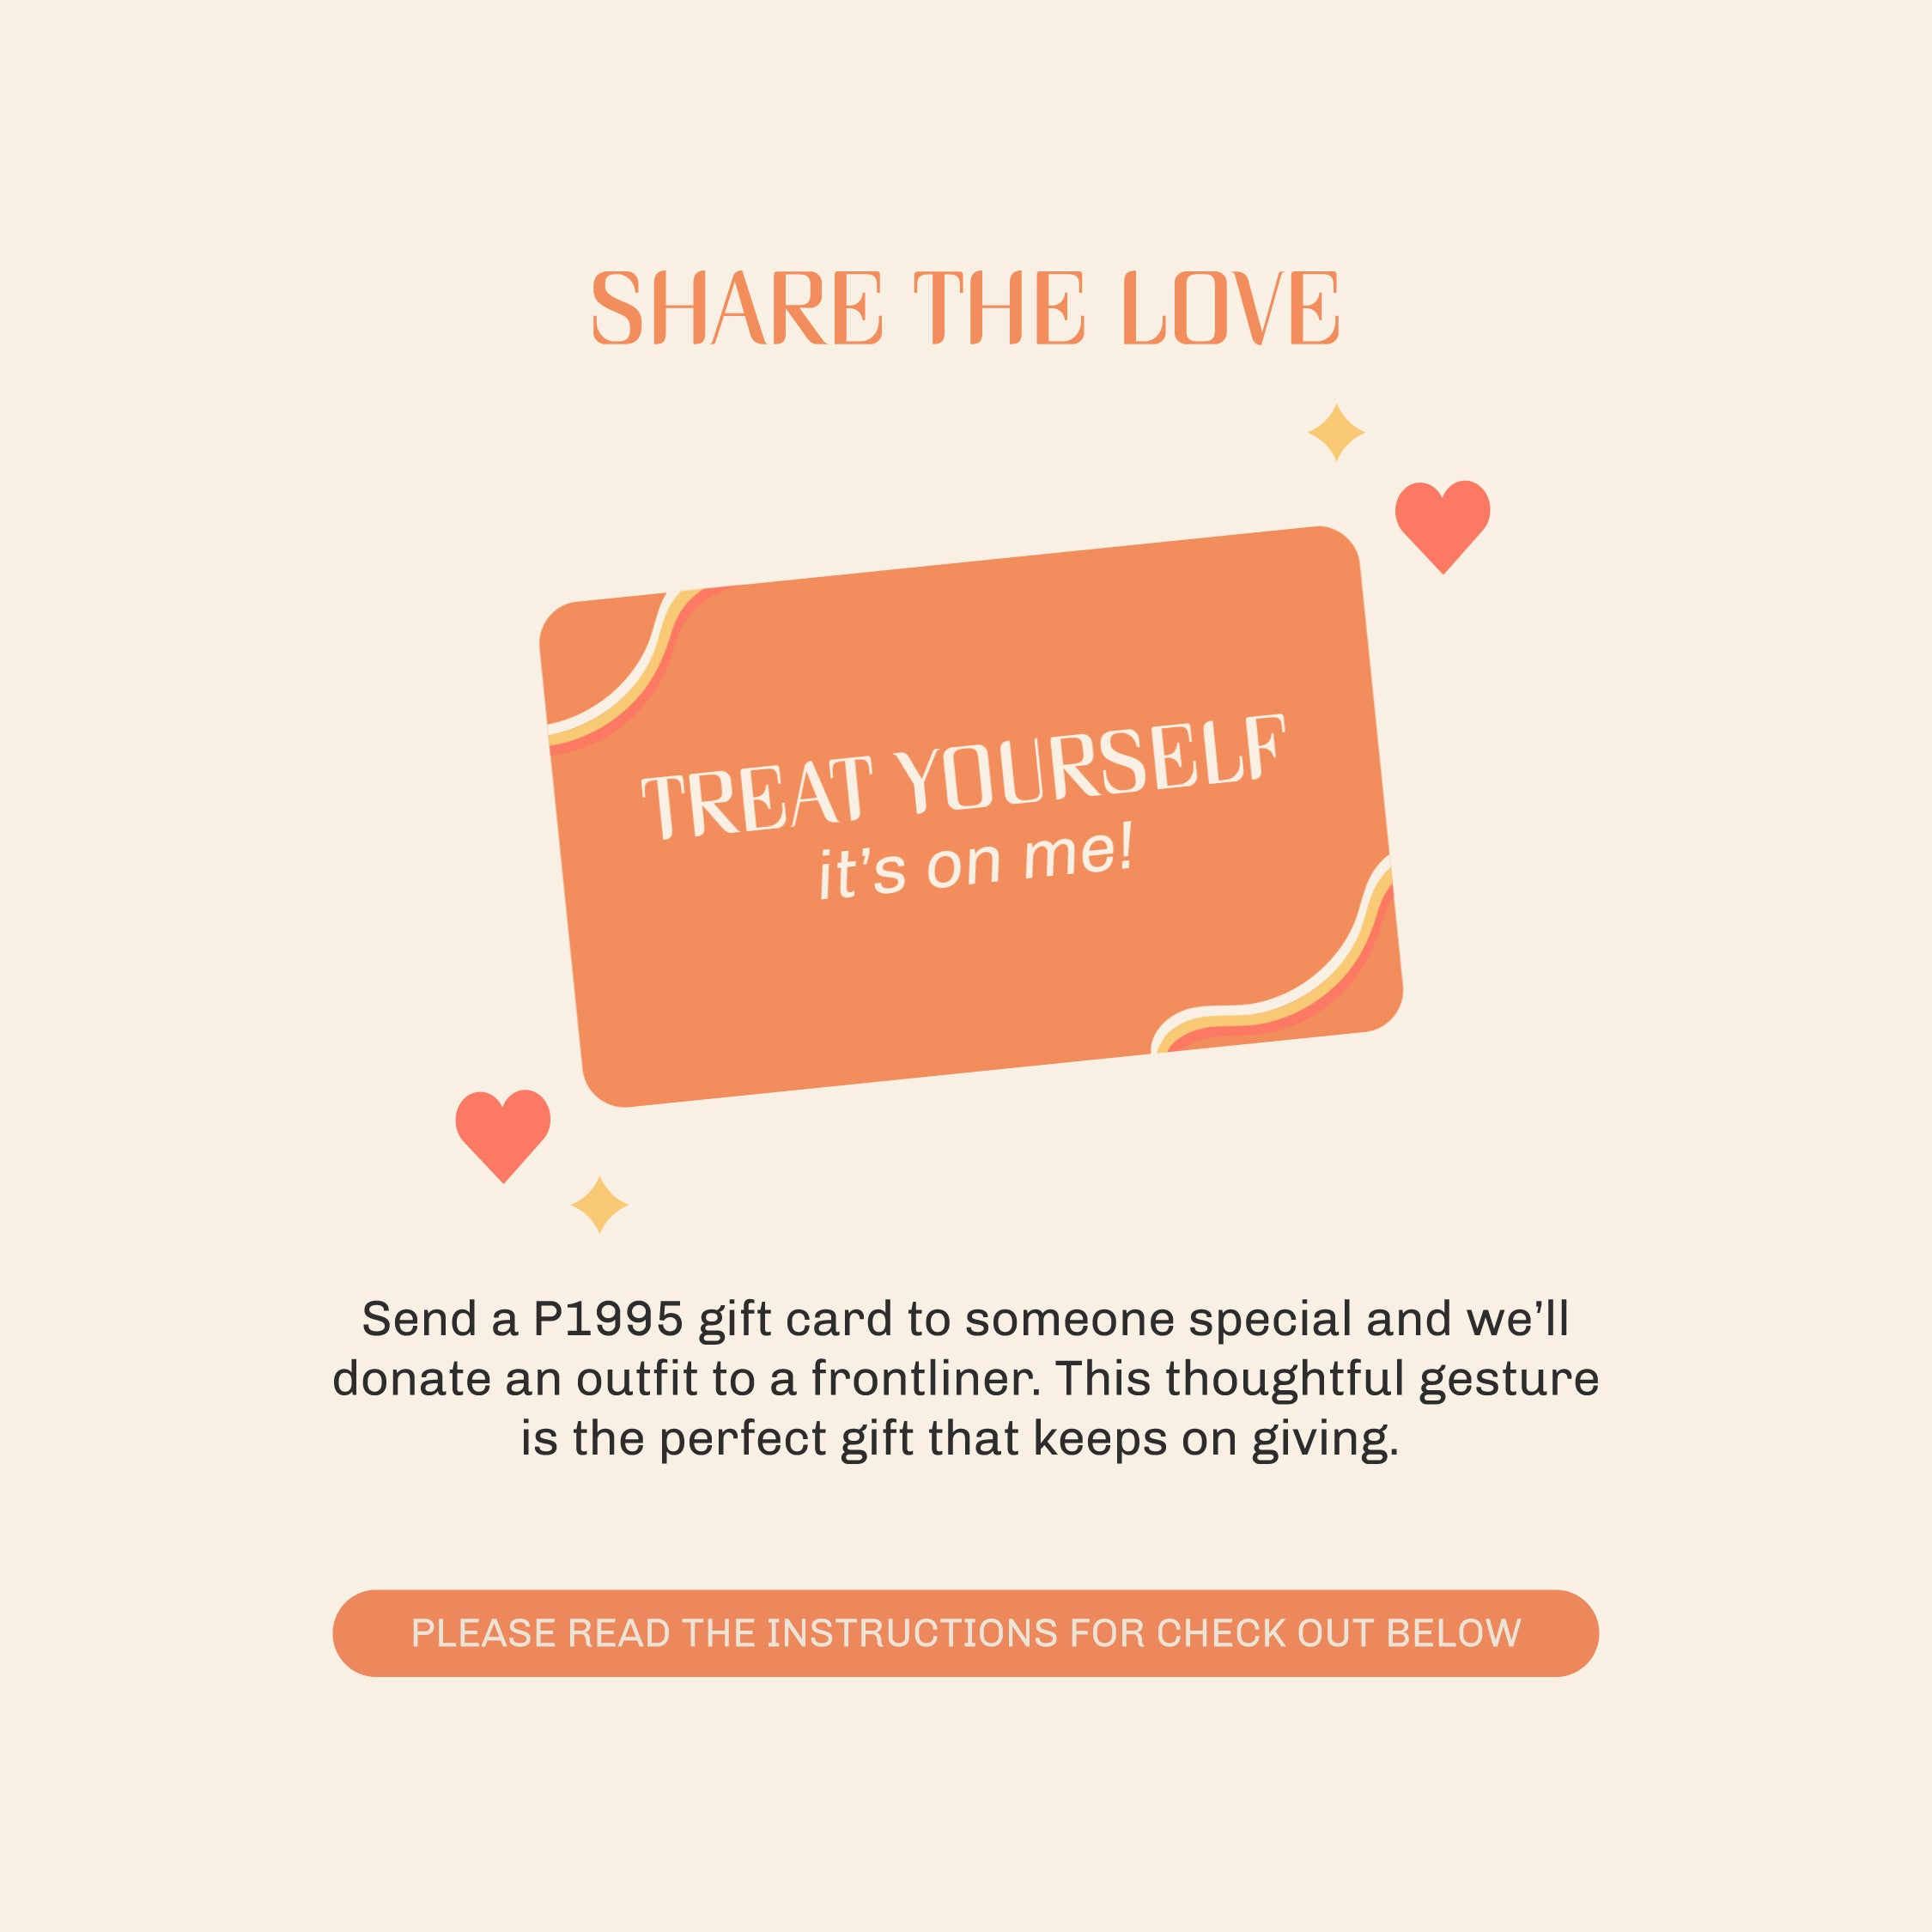 SHARE THE LOVE GIFT CARD